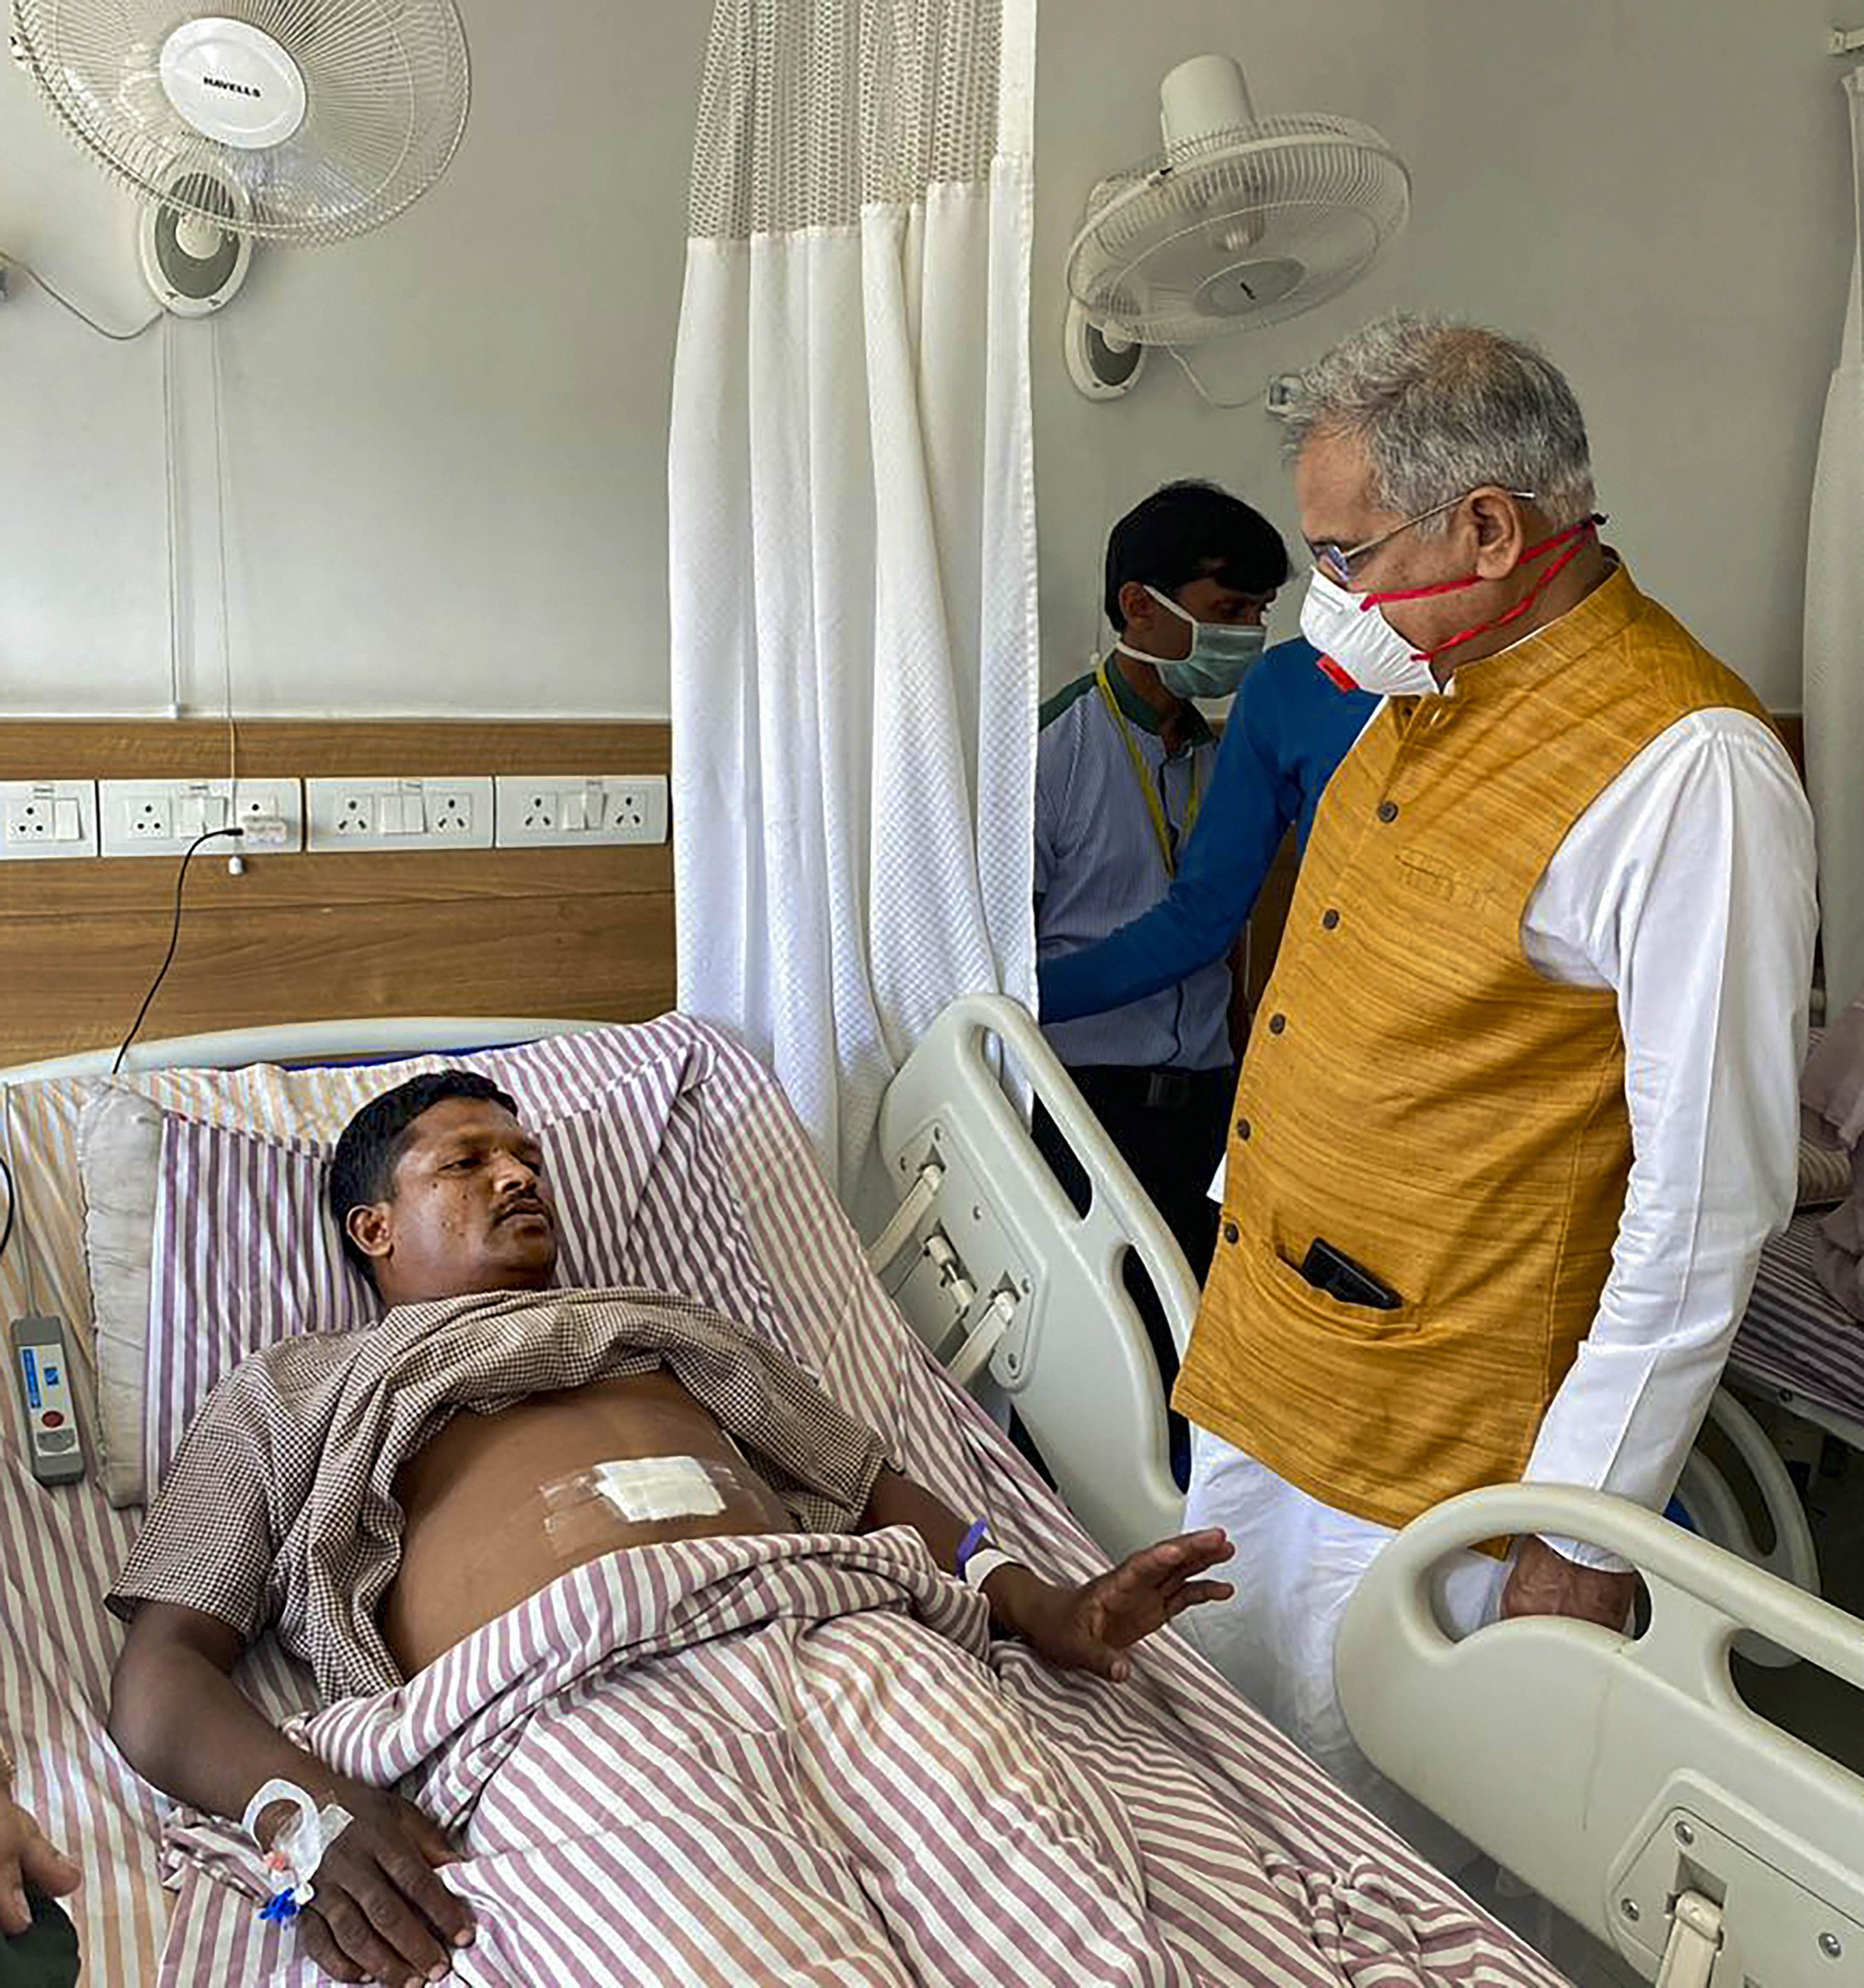 Chhattisgarh chief minister Bhupesh Baghel meets injured police personnel, at Ramkrishna Care Hospital in Raipur, Sunday, March 22, 2020